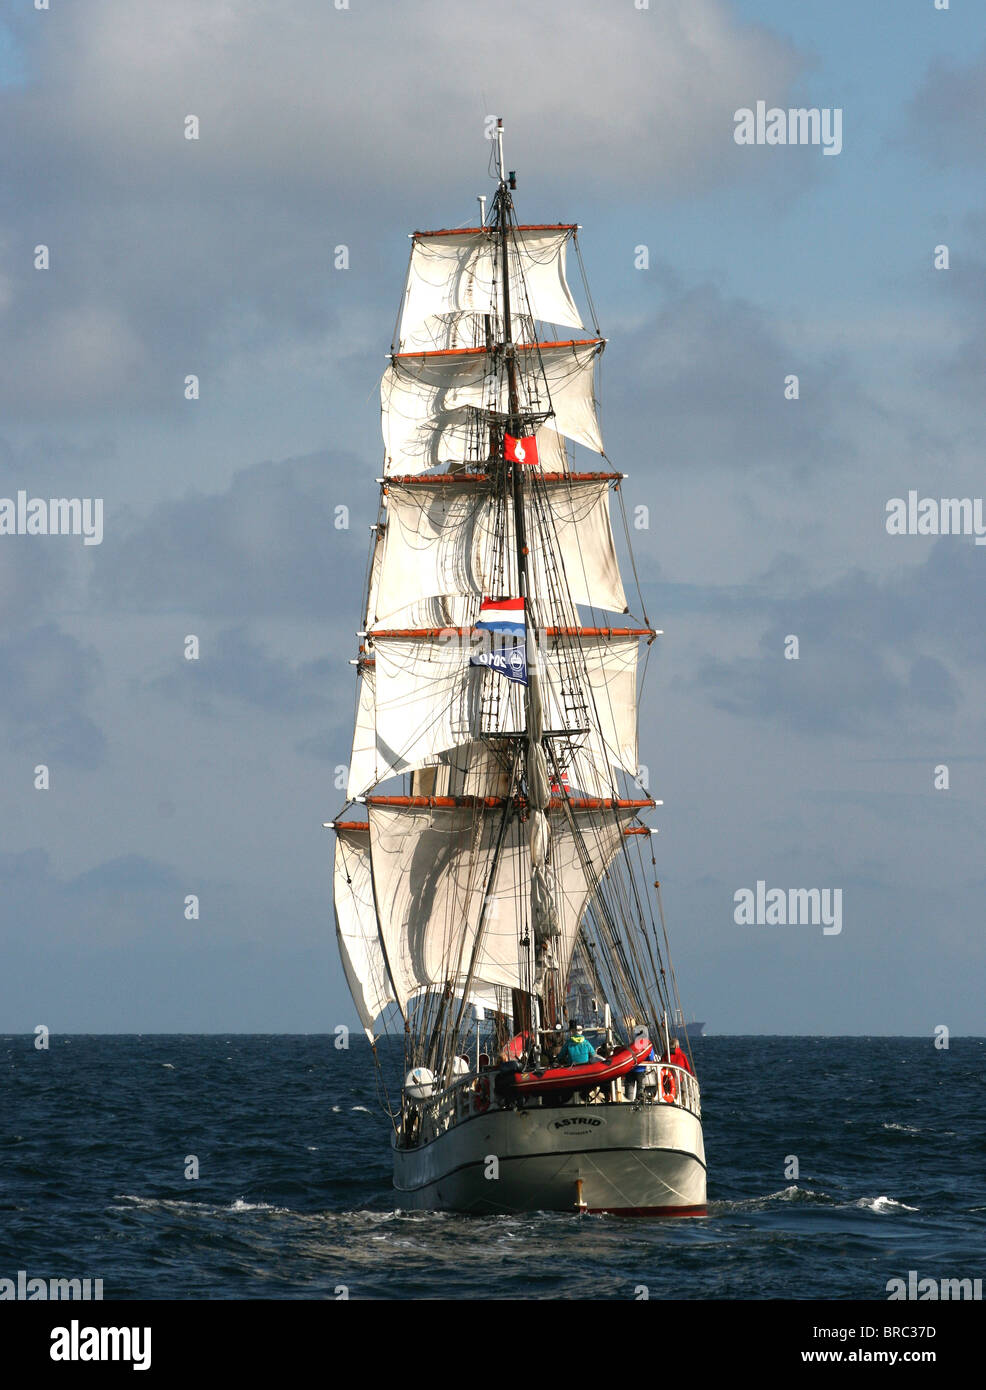 Astrid, The Tall Ships Races 2010, Kristiansand - Stock Image